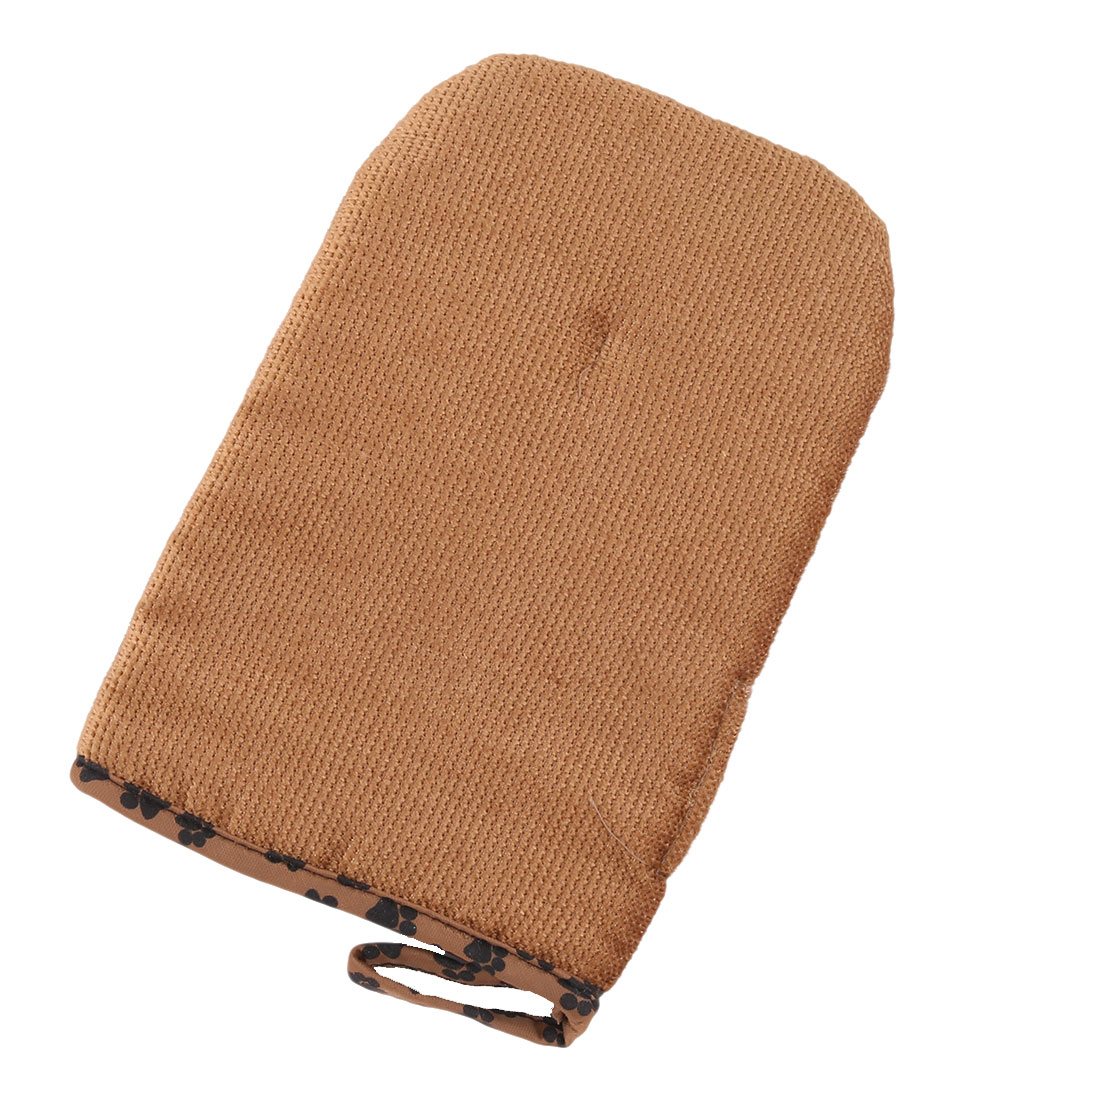 Pet Doggy Cat Shower Grooming Bathing Massage Glove Brush Brown 22.5cm x 15cm